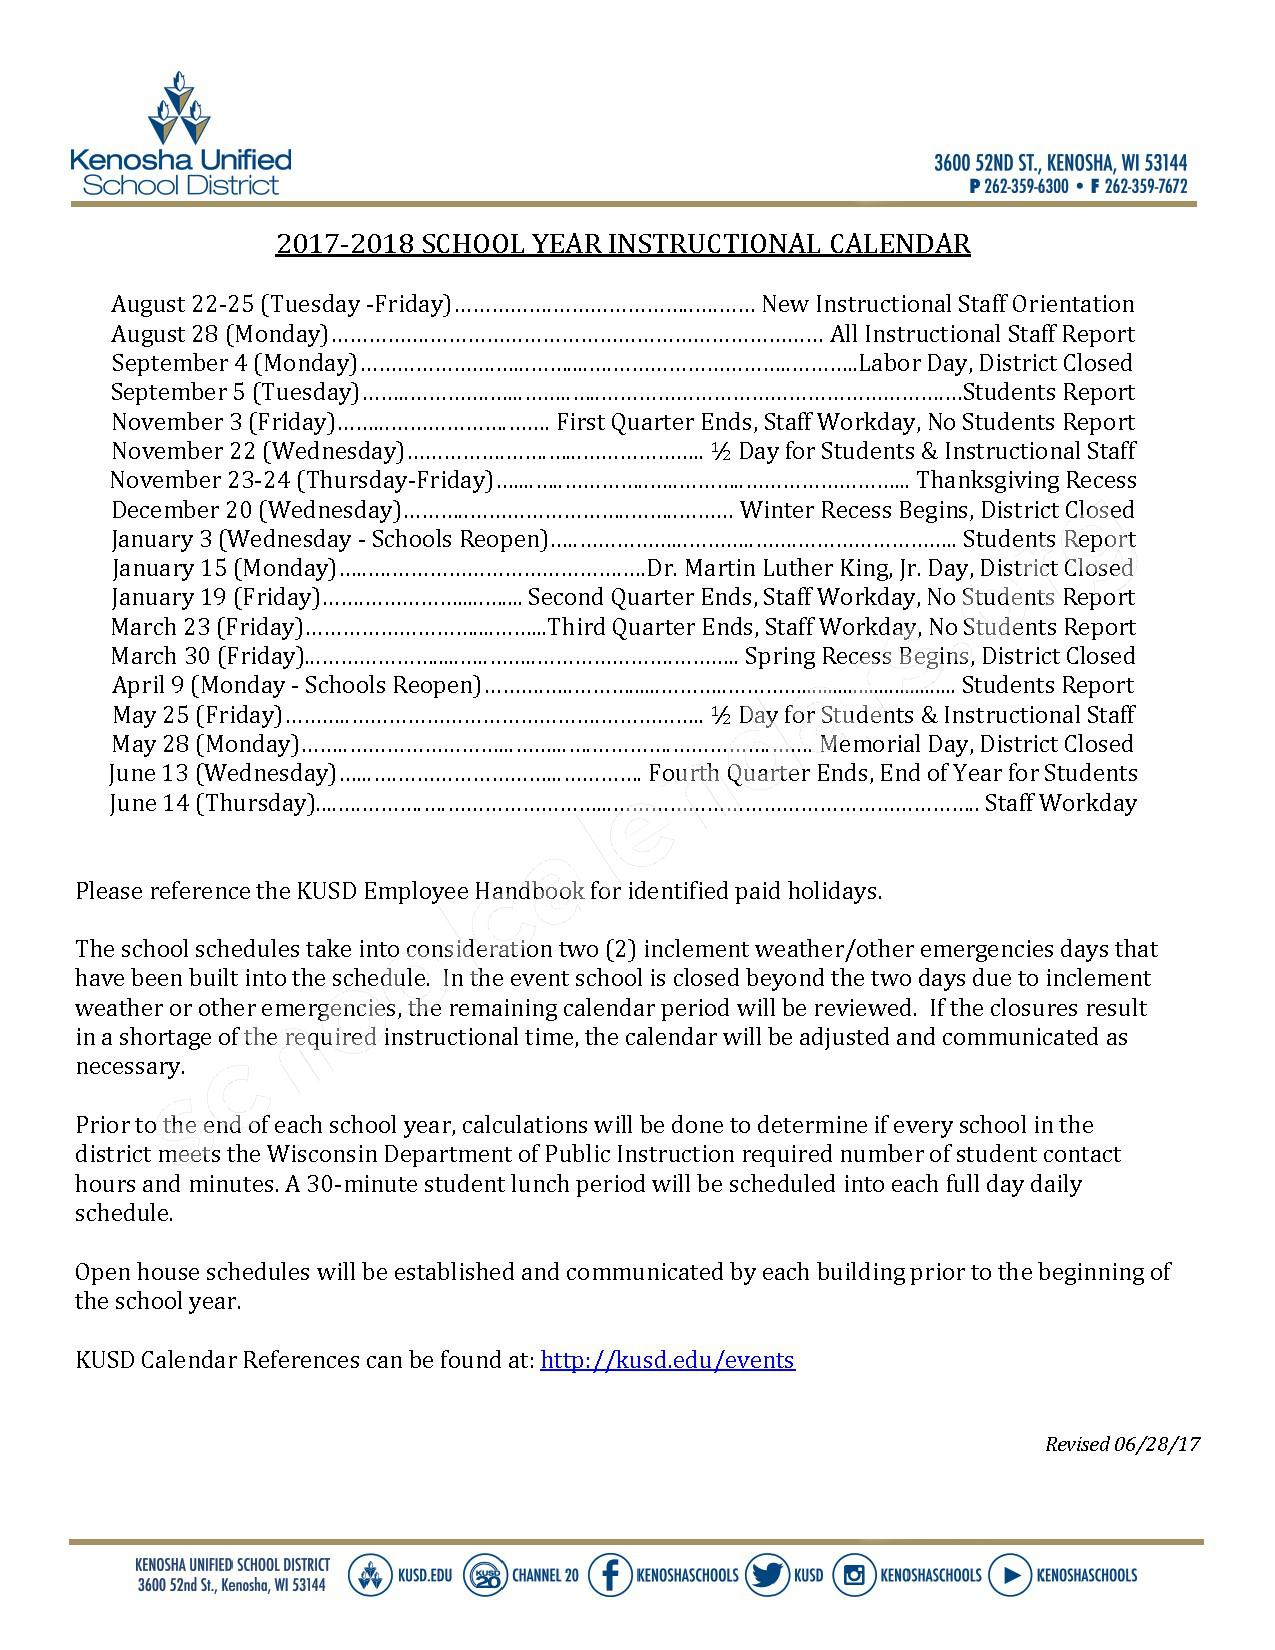 2017 - 2018 Instructional Calendar – Kenosha School District – page 1